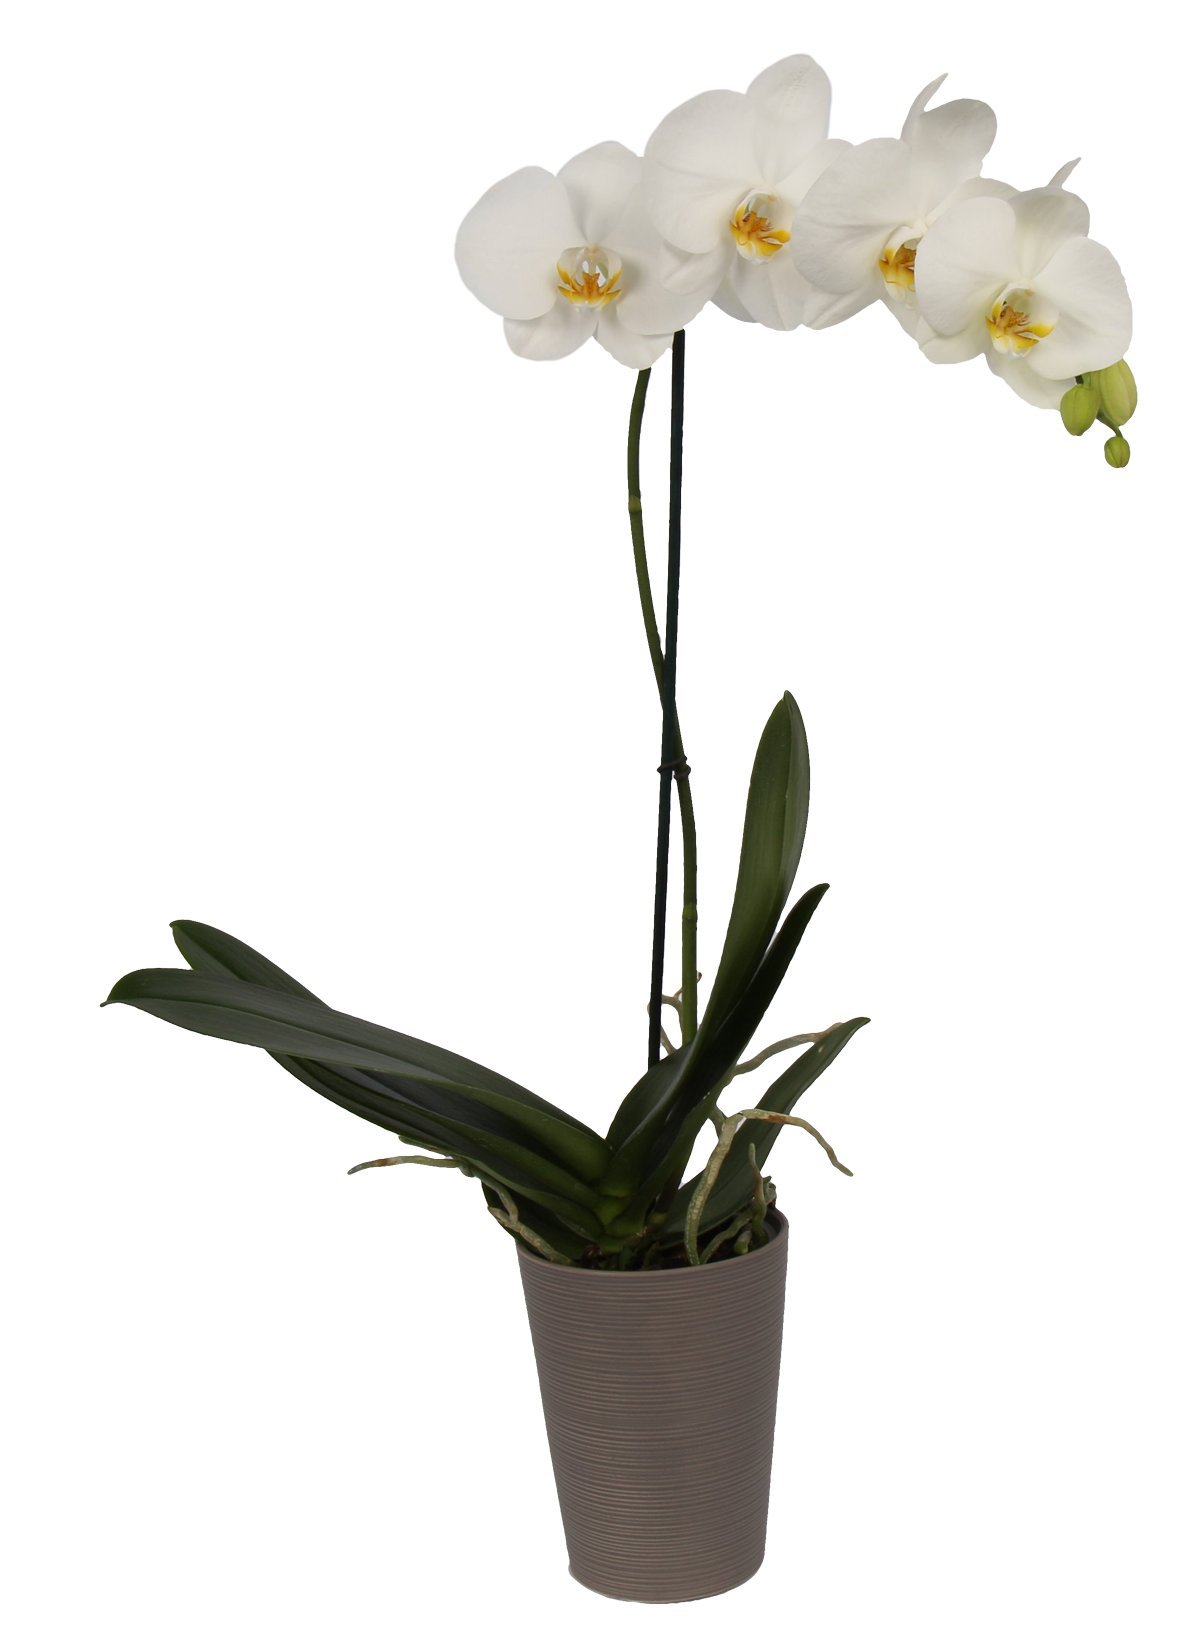 Color Orchids AMZ1101DGY1W Live Blooming Single Stem Phalaenopsis Orchid Plant in Ceramic Pot, 20''-24'' Tall, White Blooms